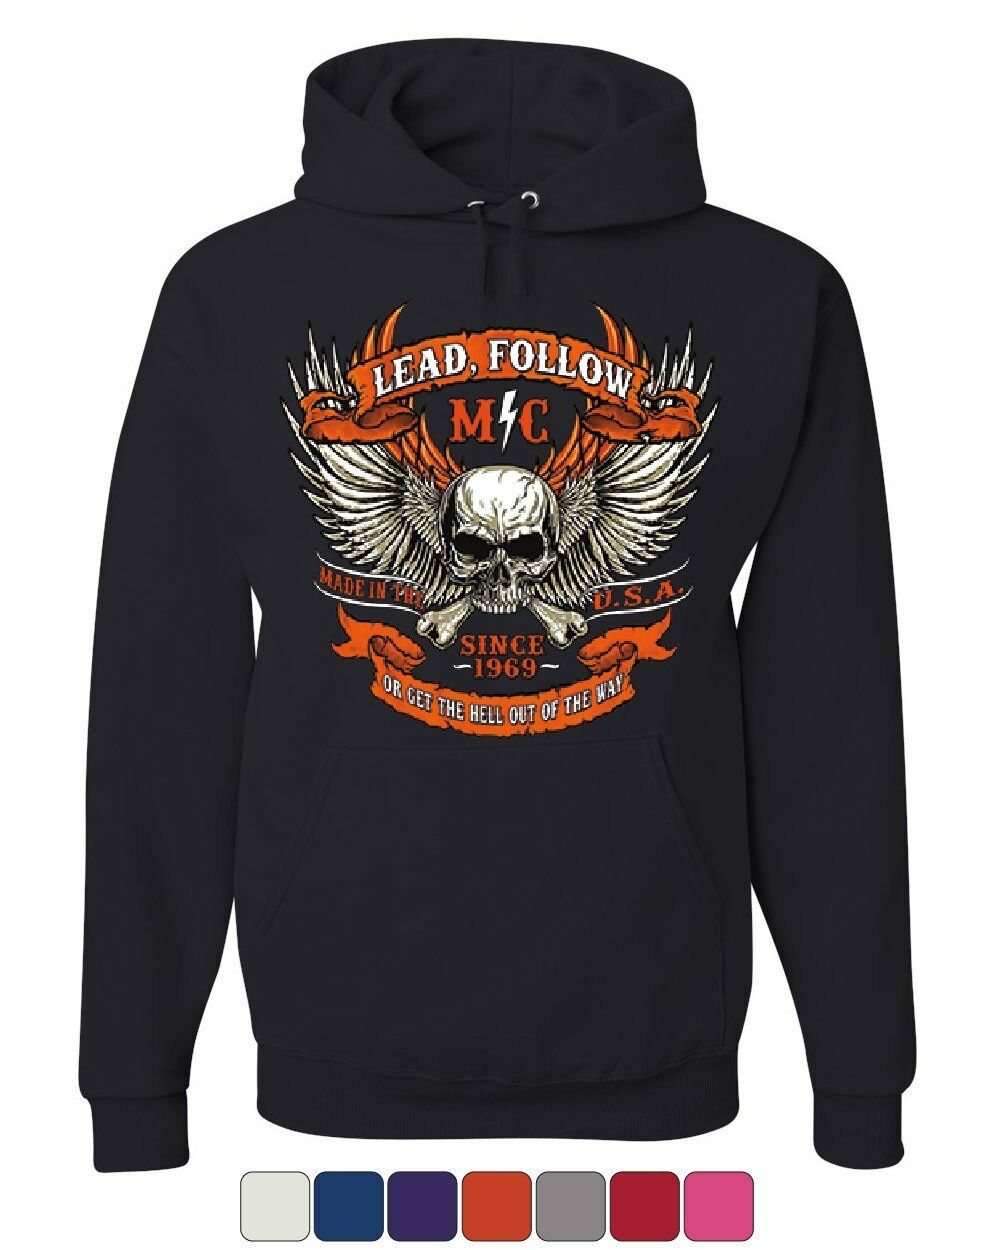 e8527e4b Lead Follow or Get the Hell Out of the Way Hoodie Route 66 MC Sweatshirt.  Vintage Reverse Weave Champion Sweatshirt. Size XL.